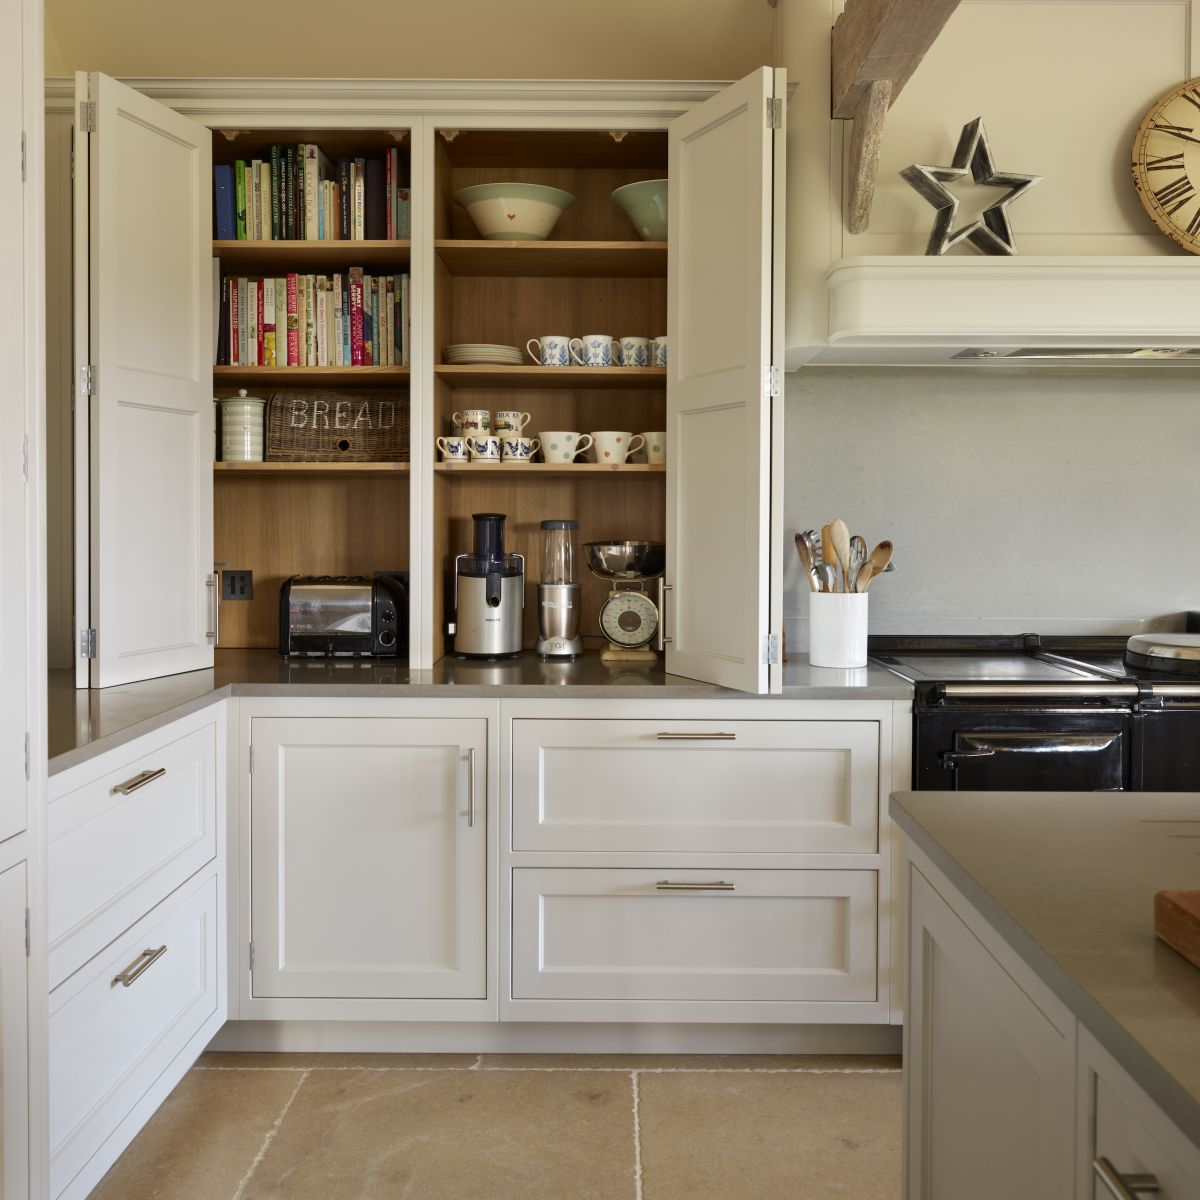 28 Stunning Kitchen Cabinet Designs Be Inspired With Our Round Up Of Ideas Real Homes